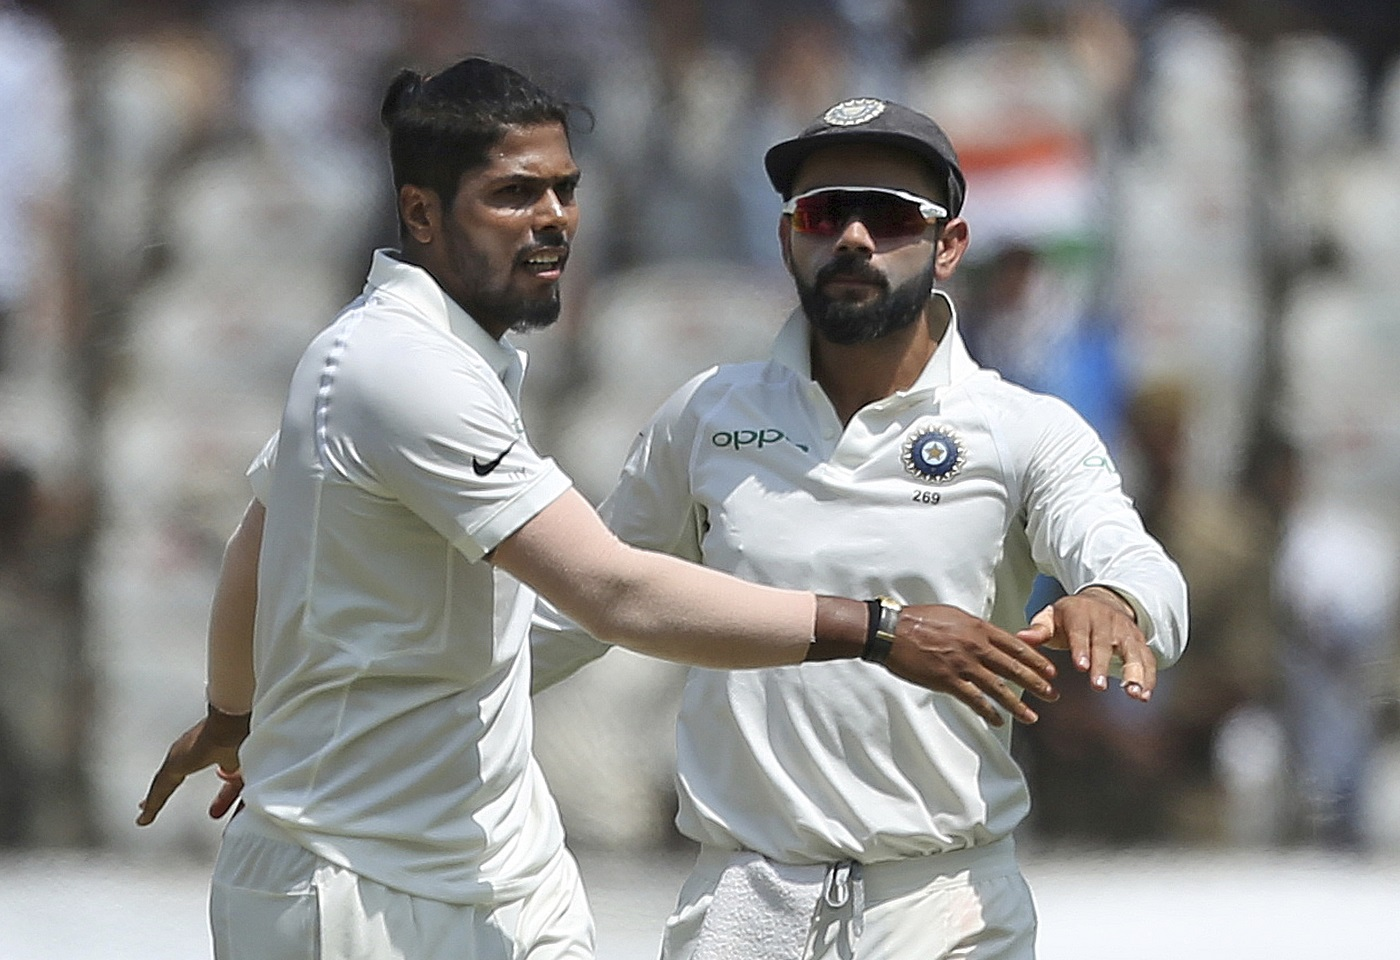 India Vs West Indies 2nd Test Day 1 Highlights